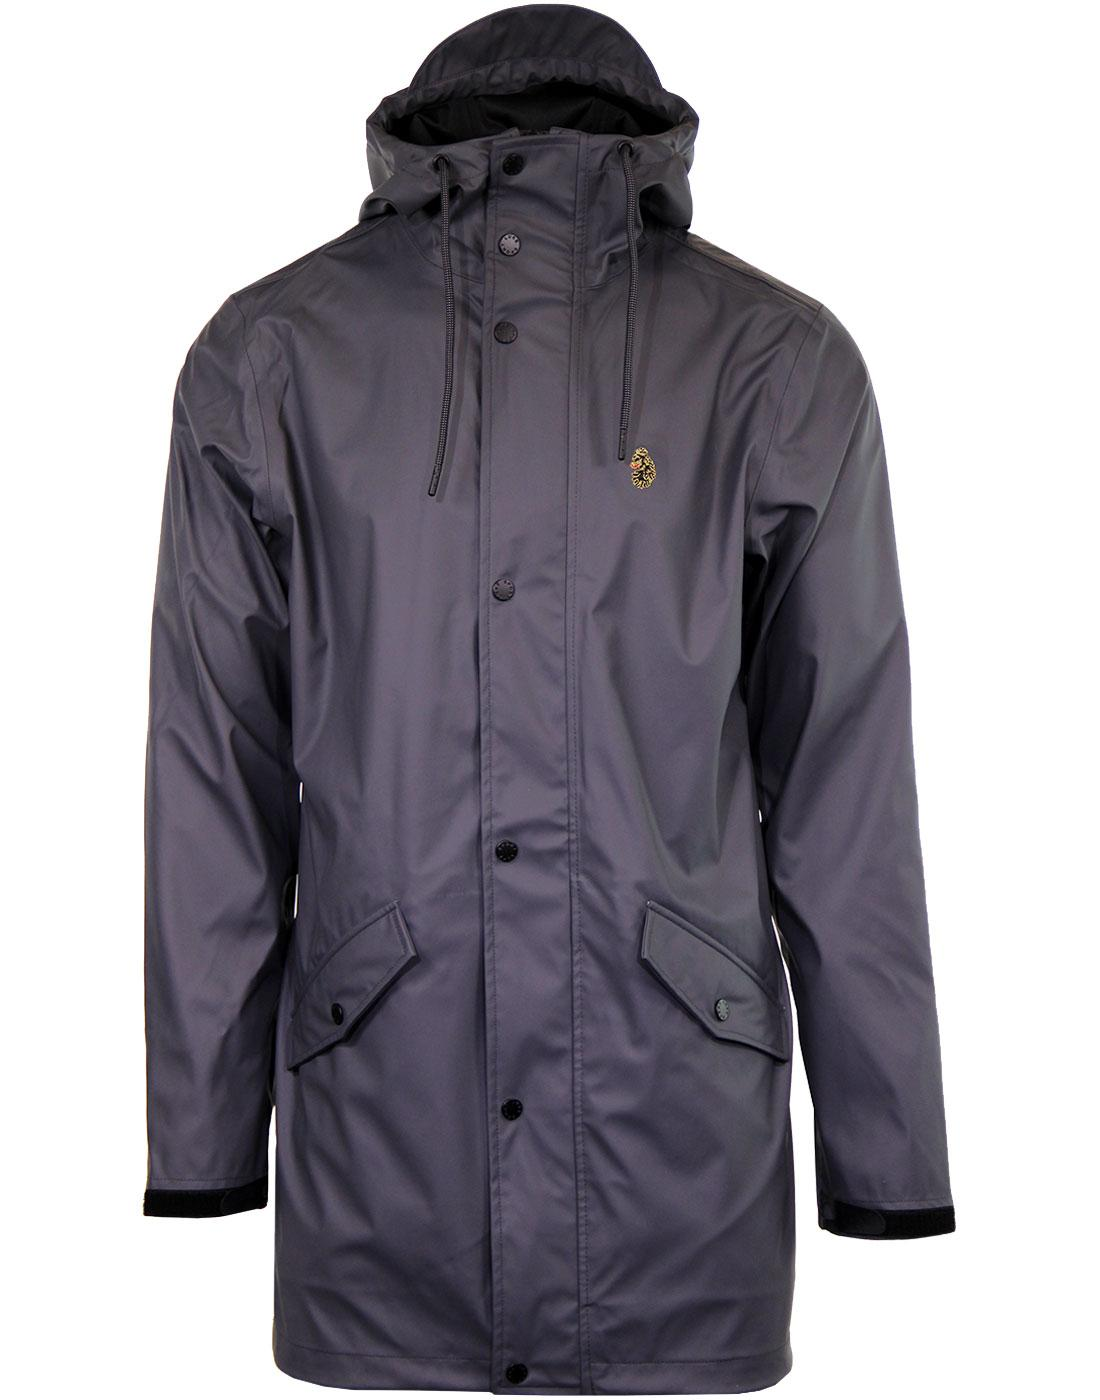 Fulwood LUKE 1977 Retro Indie Fishtail Mac Parka